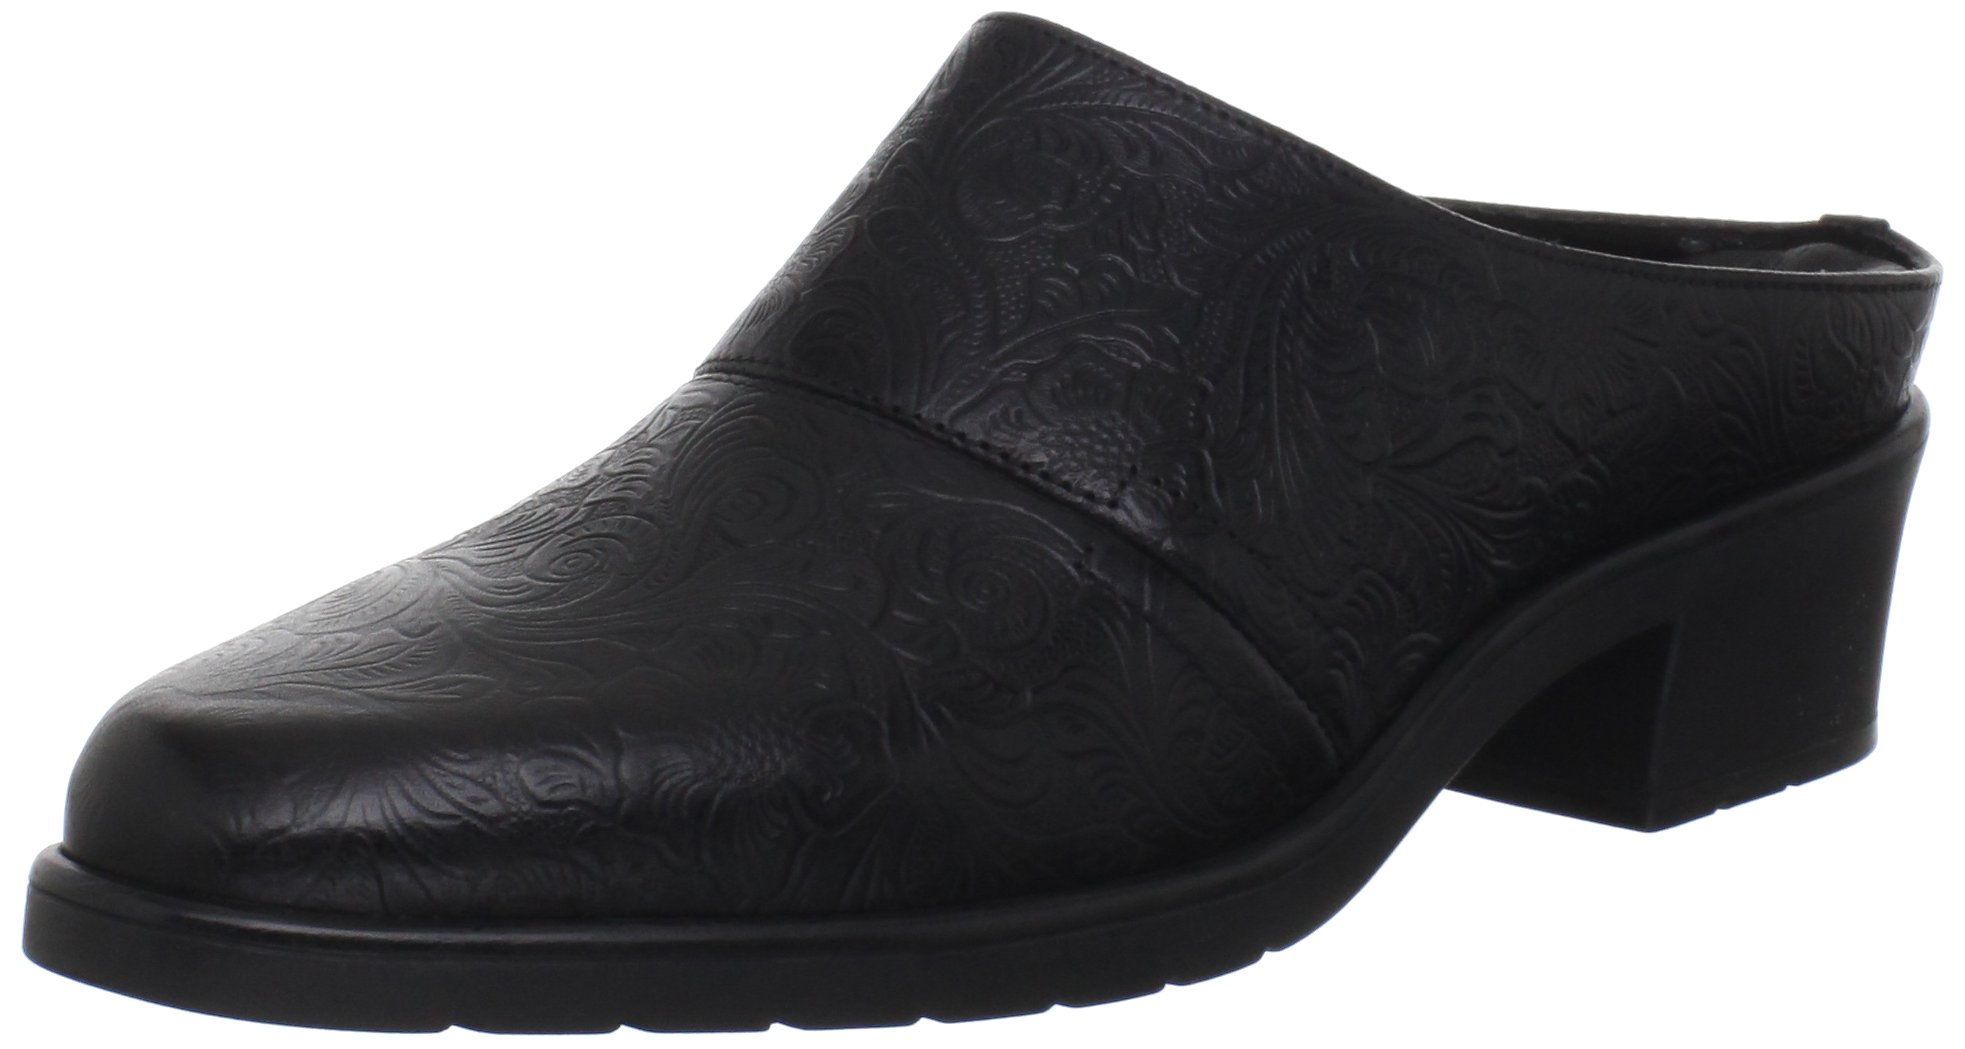 Walking Cradles Women's Caden Clog,Black Leather,9 M US by Walking Cradles